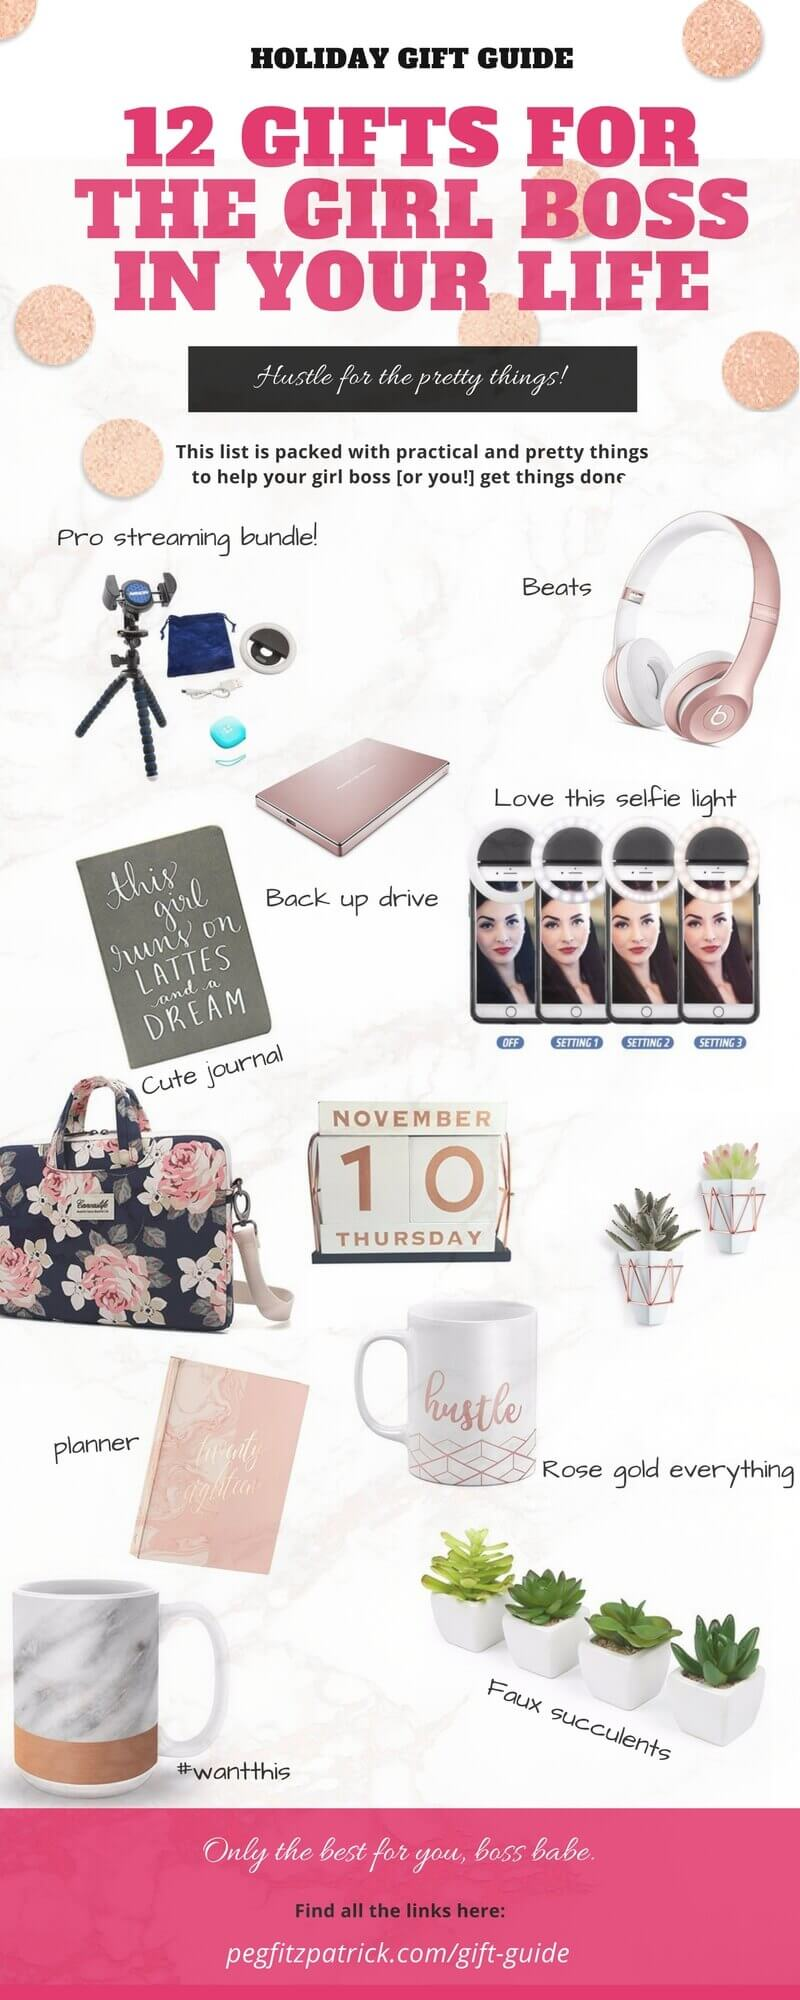 I'm always gathering inspiration for my Instagram and being surrounded by things that are beautiful boosts my creativity. This gift guide is packed with practical and pretty things to help your girl boss [or you!] get things done. #holidaygiftguide #girlboss